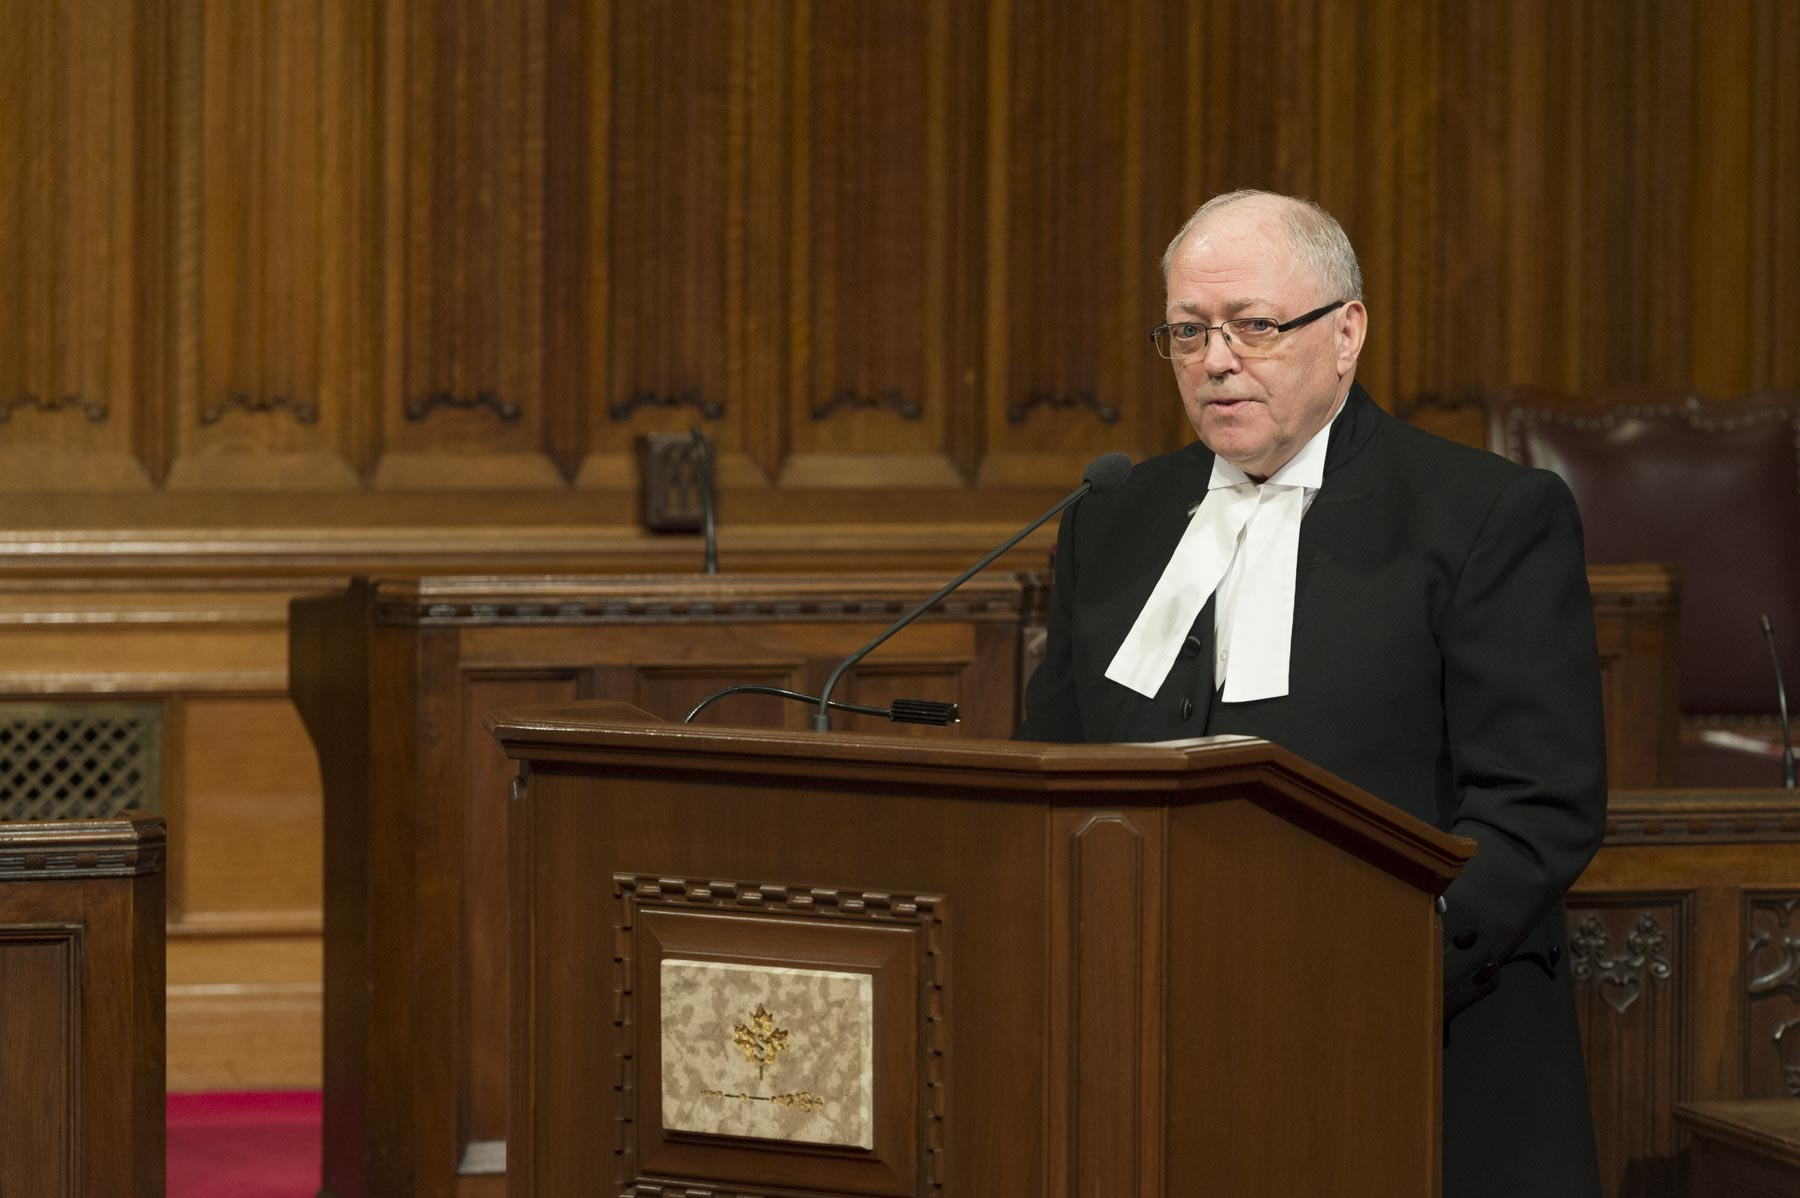 His Excellency the Right Honourable David Johnston, Governor General of Canada, attended  the Senate Symposium on the 150th Anniversary of Canadian Confederation. The Honourable George J. Furey, Speaker of the Senate, offered words of welcome.